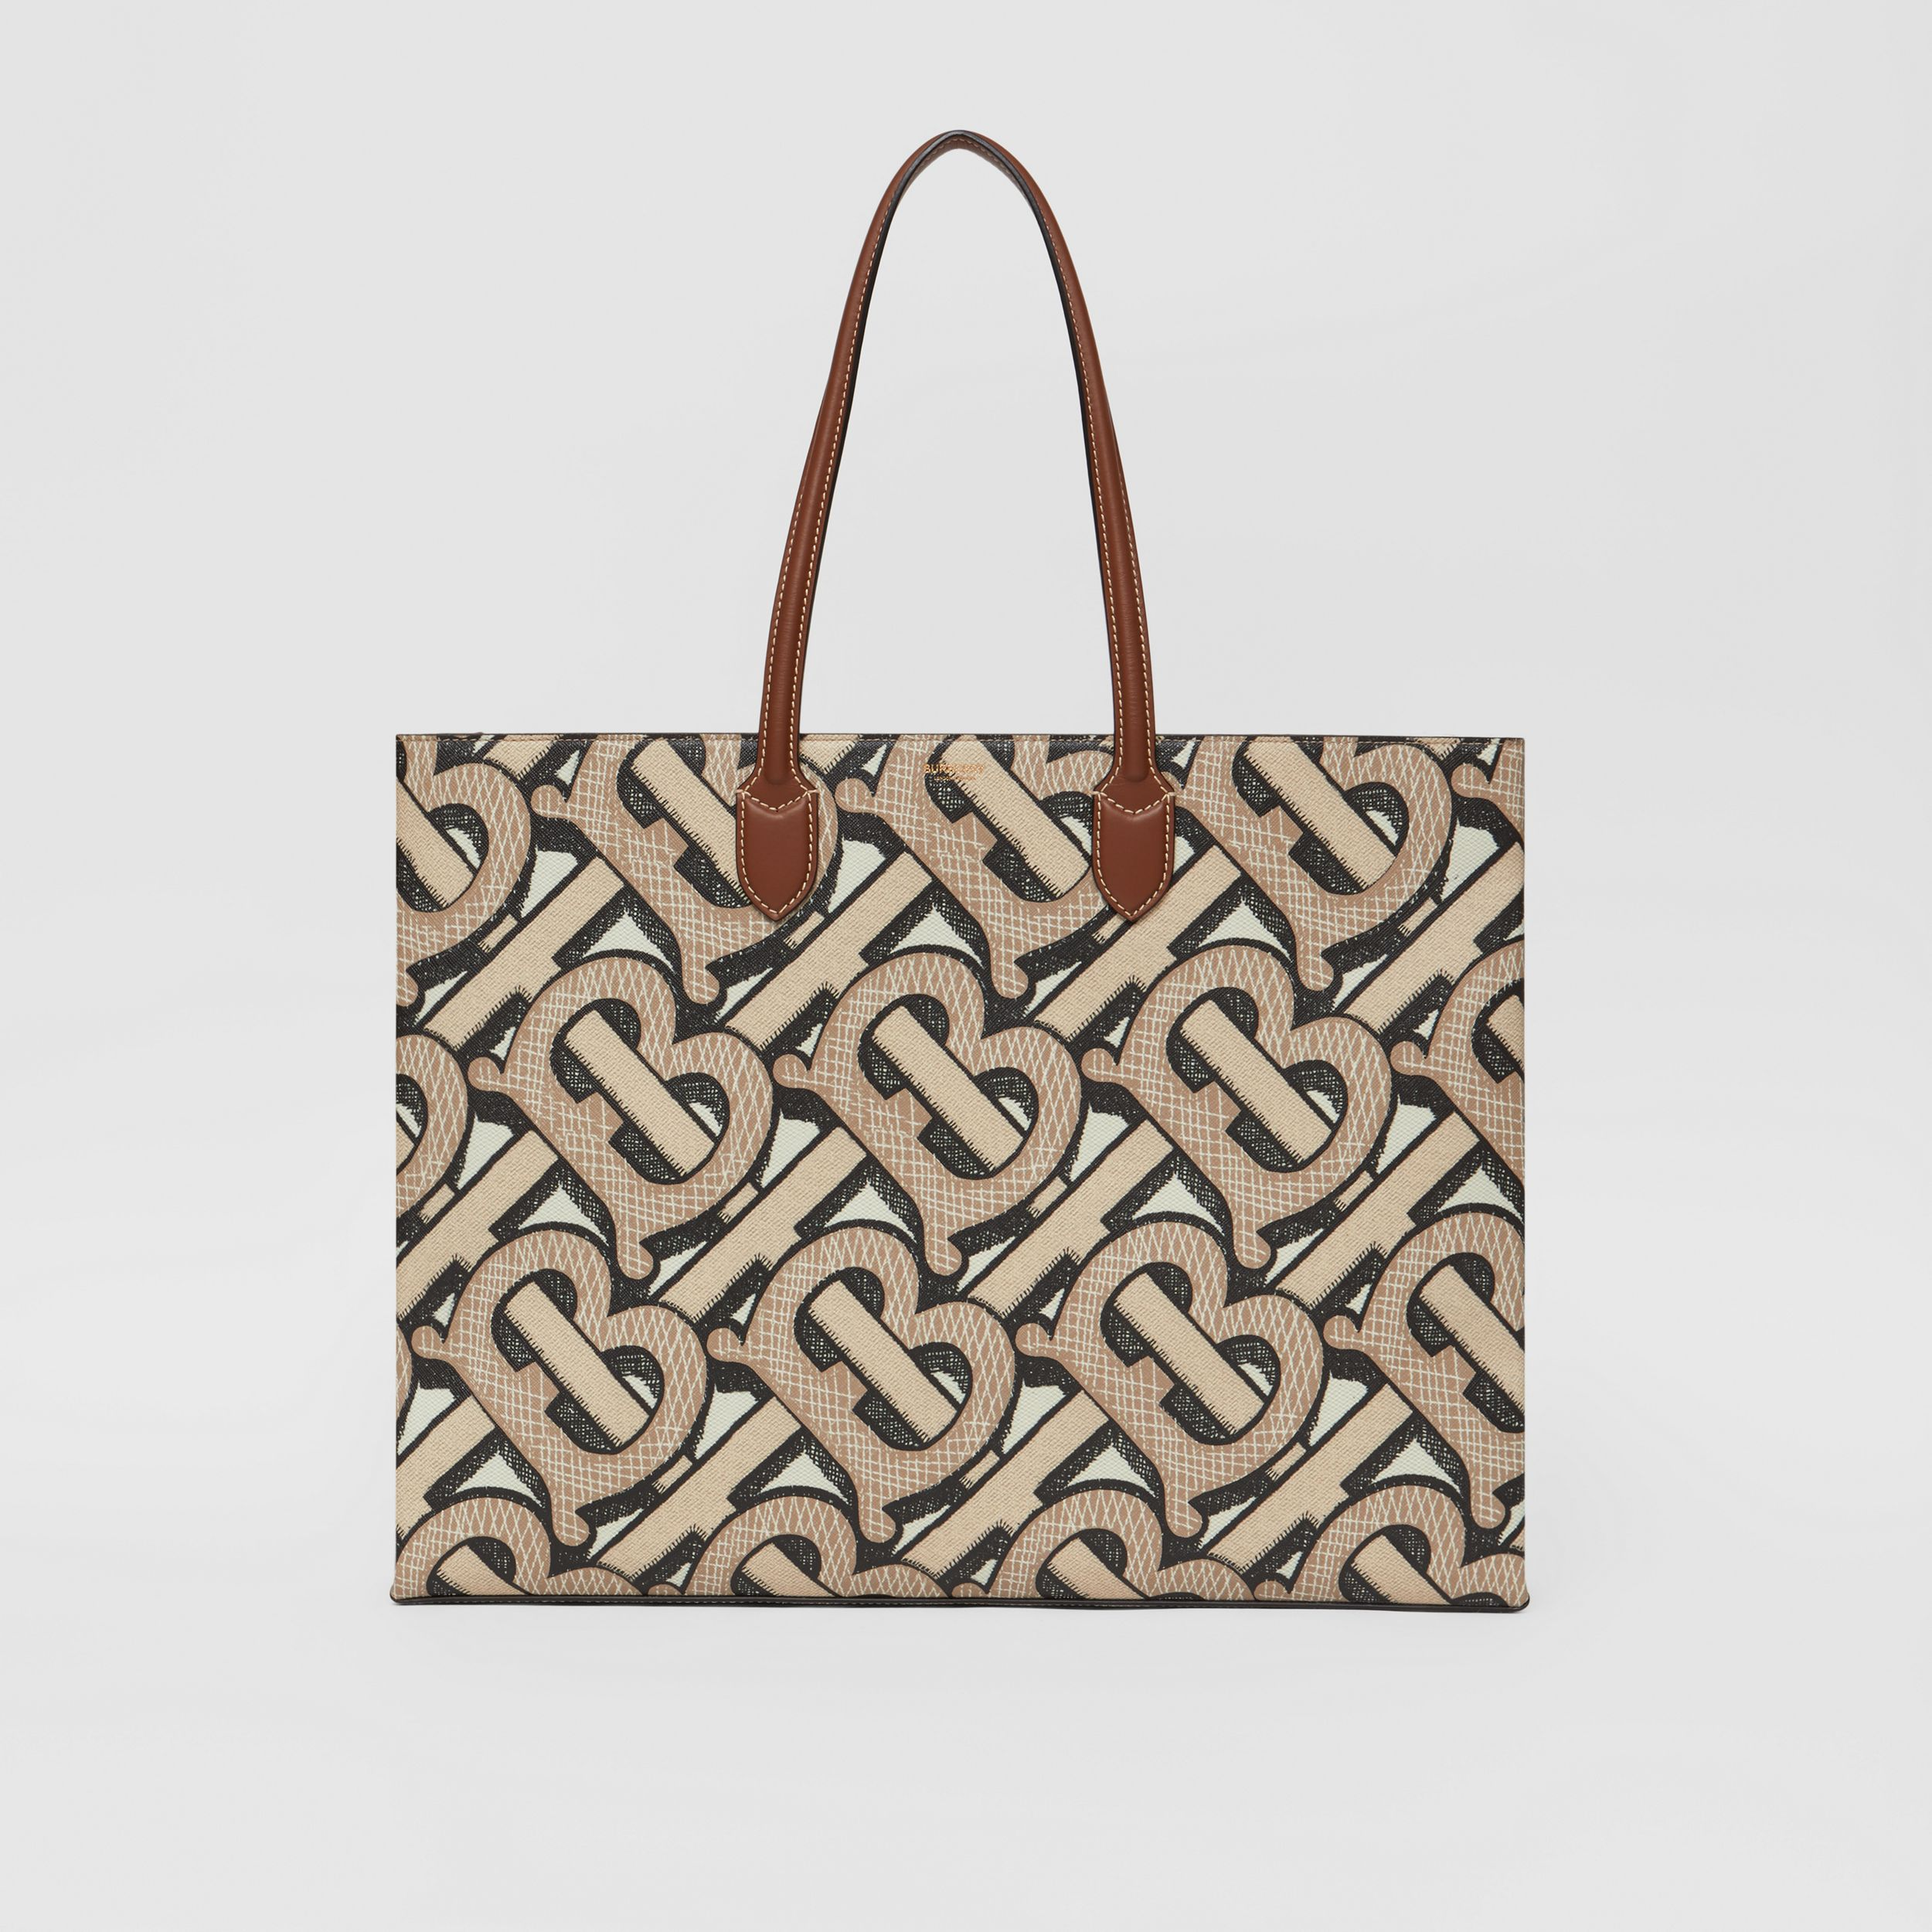 Monogram Print E-canvas Tote Bag in Dark Beige | Burberry Australia - 1